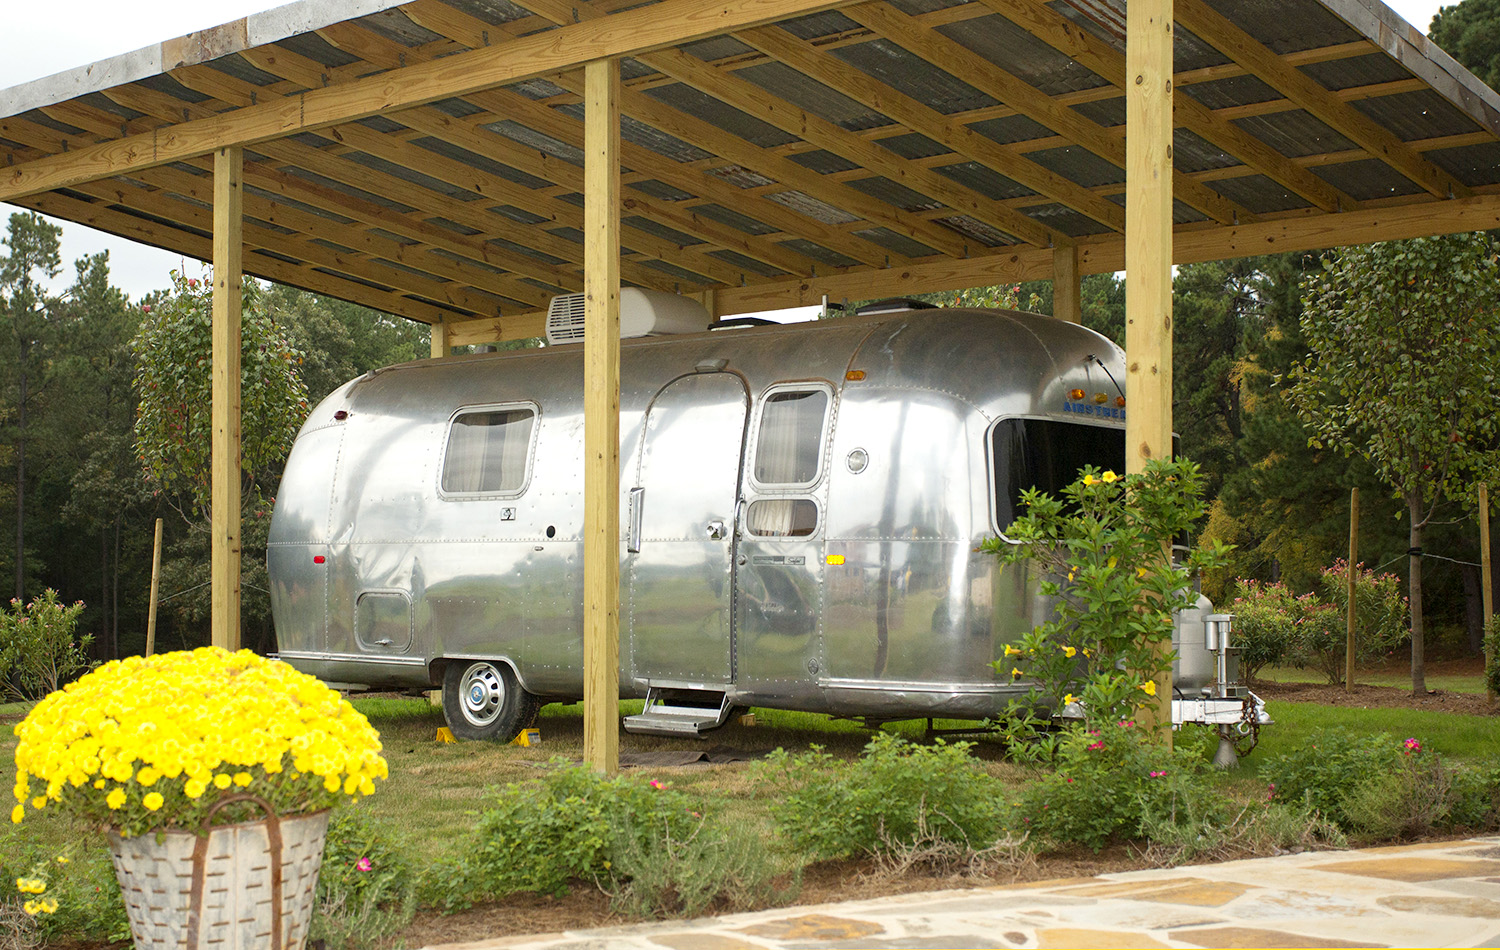 Airstream Glamping Trailer.jpg